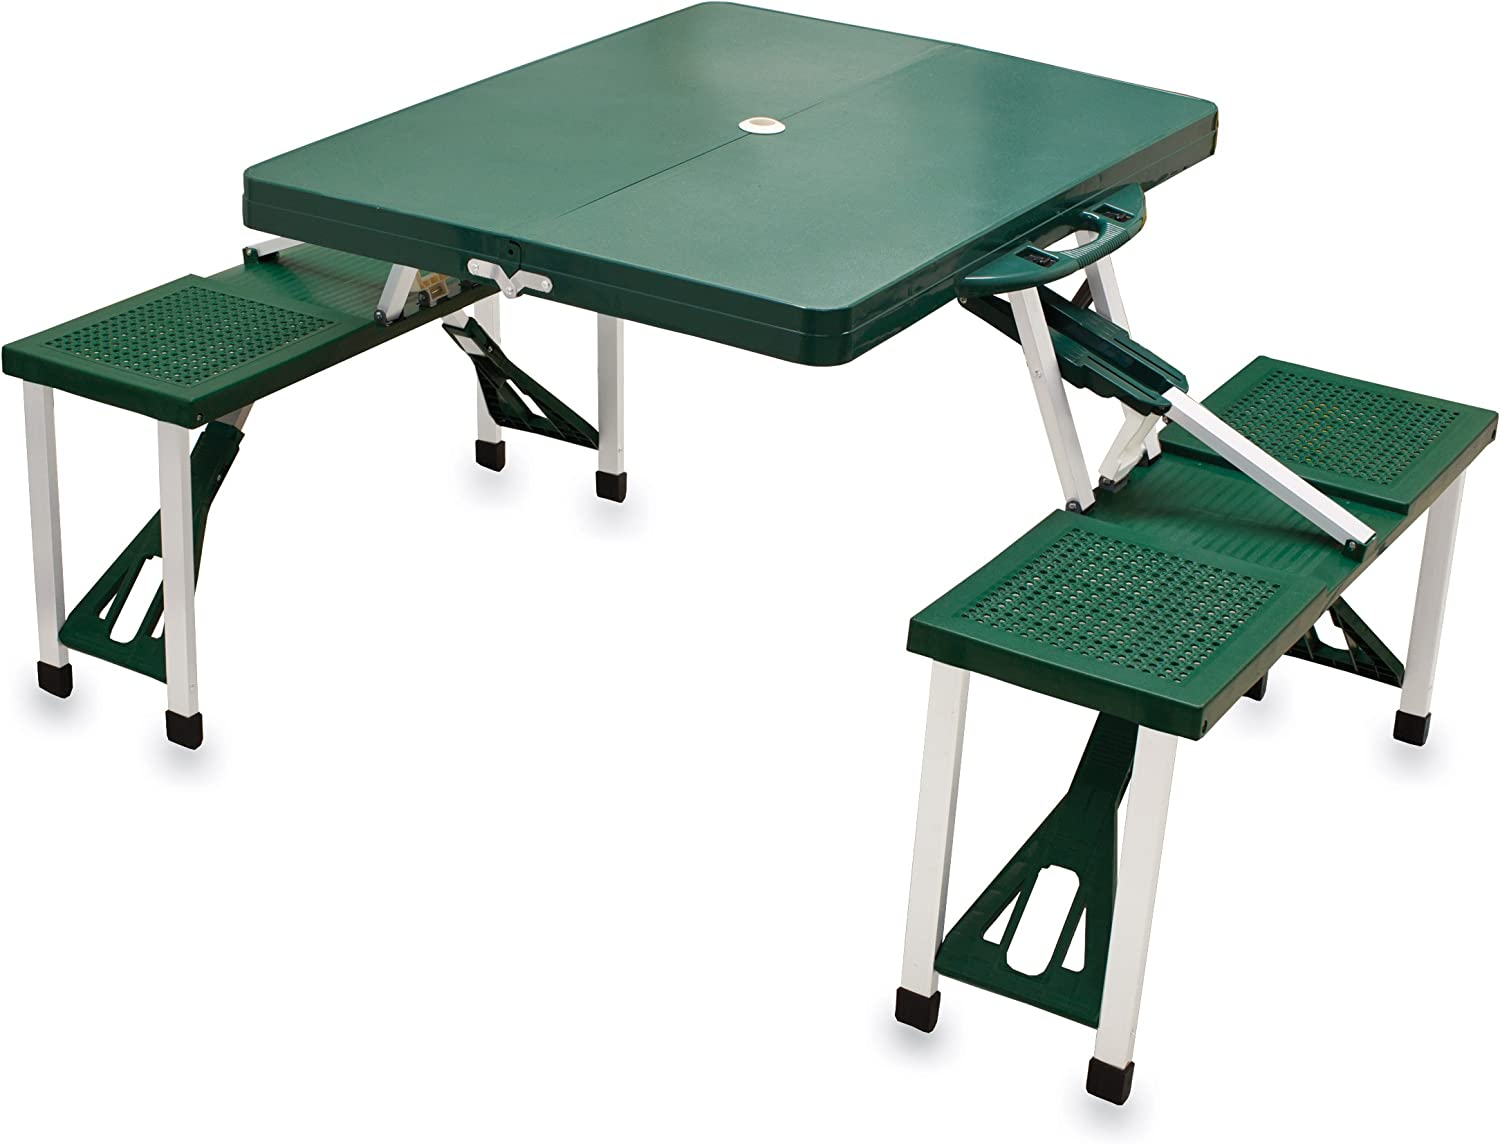 ONIVA - a Picnic Time Brand Portable Folding Picnic Table with Seating for 4, Green